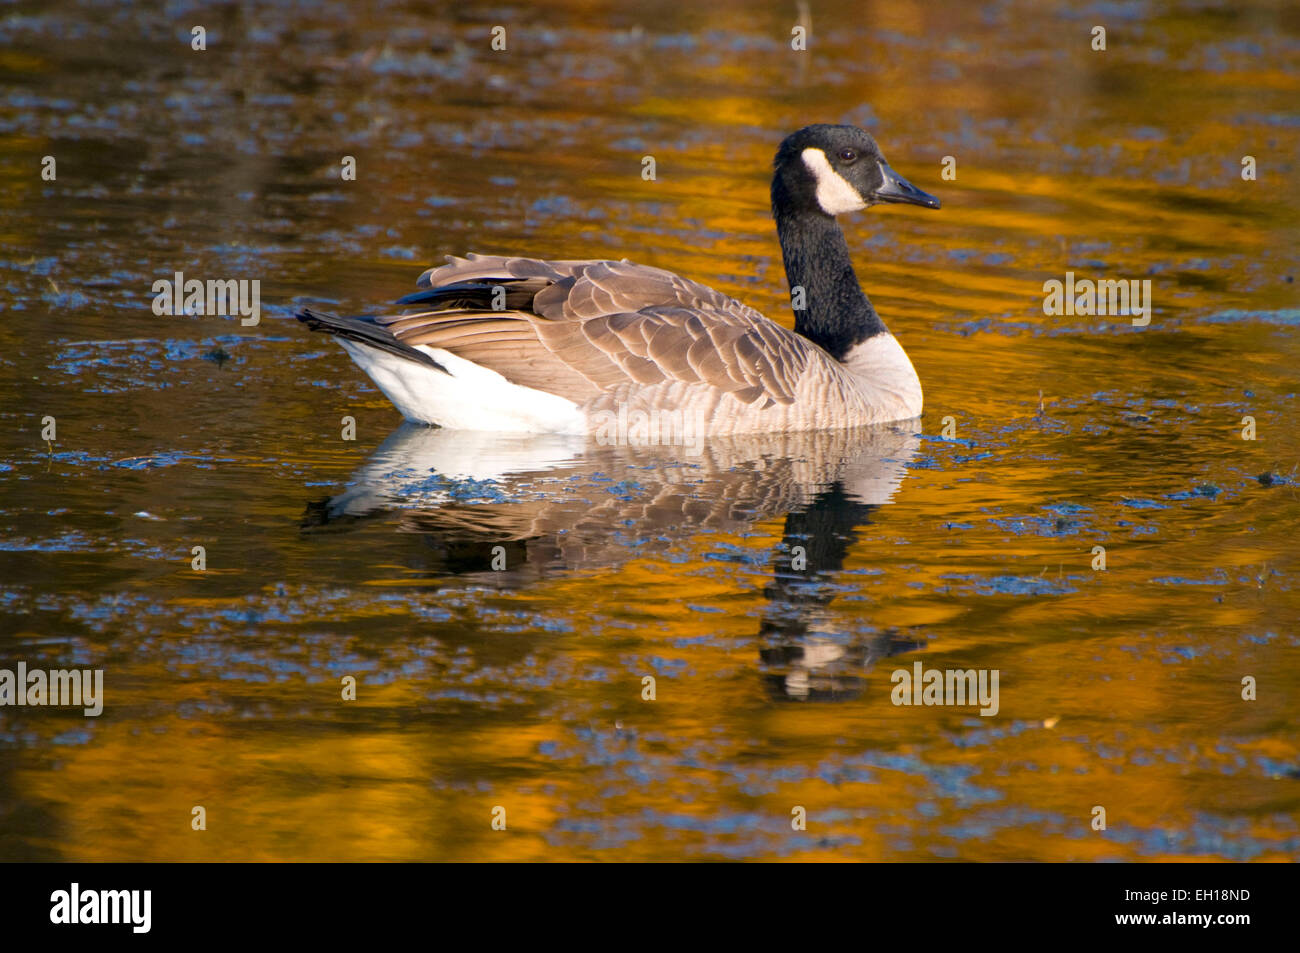 New Forest Canada Goose Stockfotos & New Forest Canada Goose